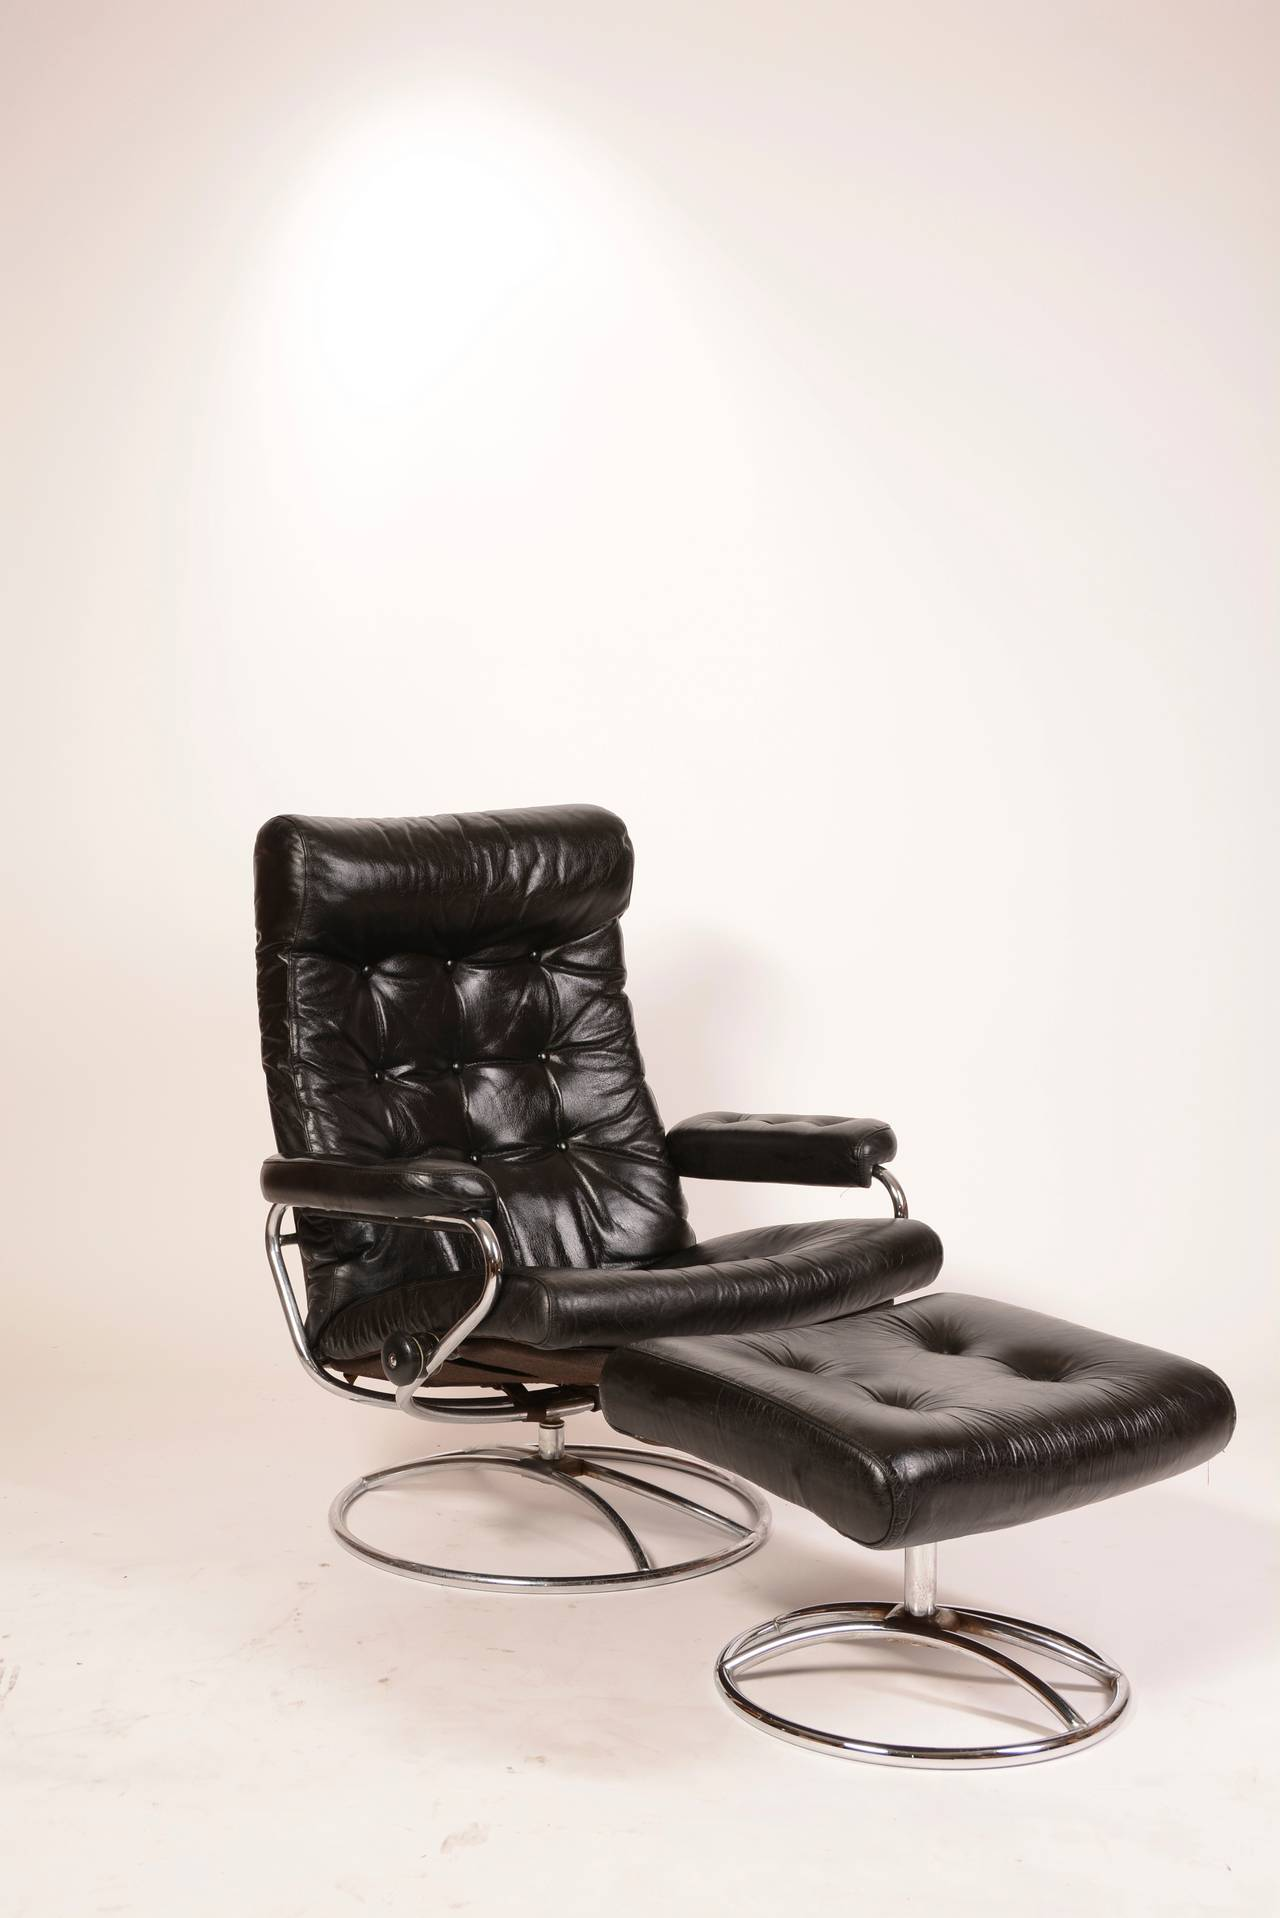 Ekornes Chairs Reclining Stressless Lounge Chair And Ottoman By Ekornes